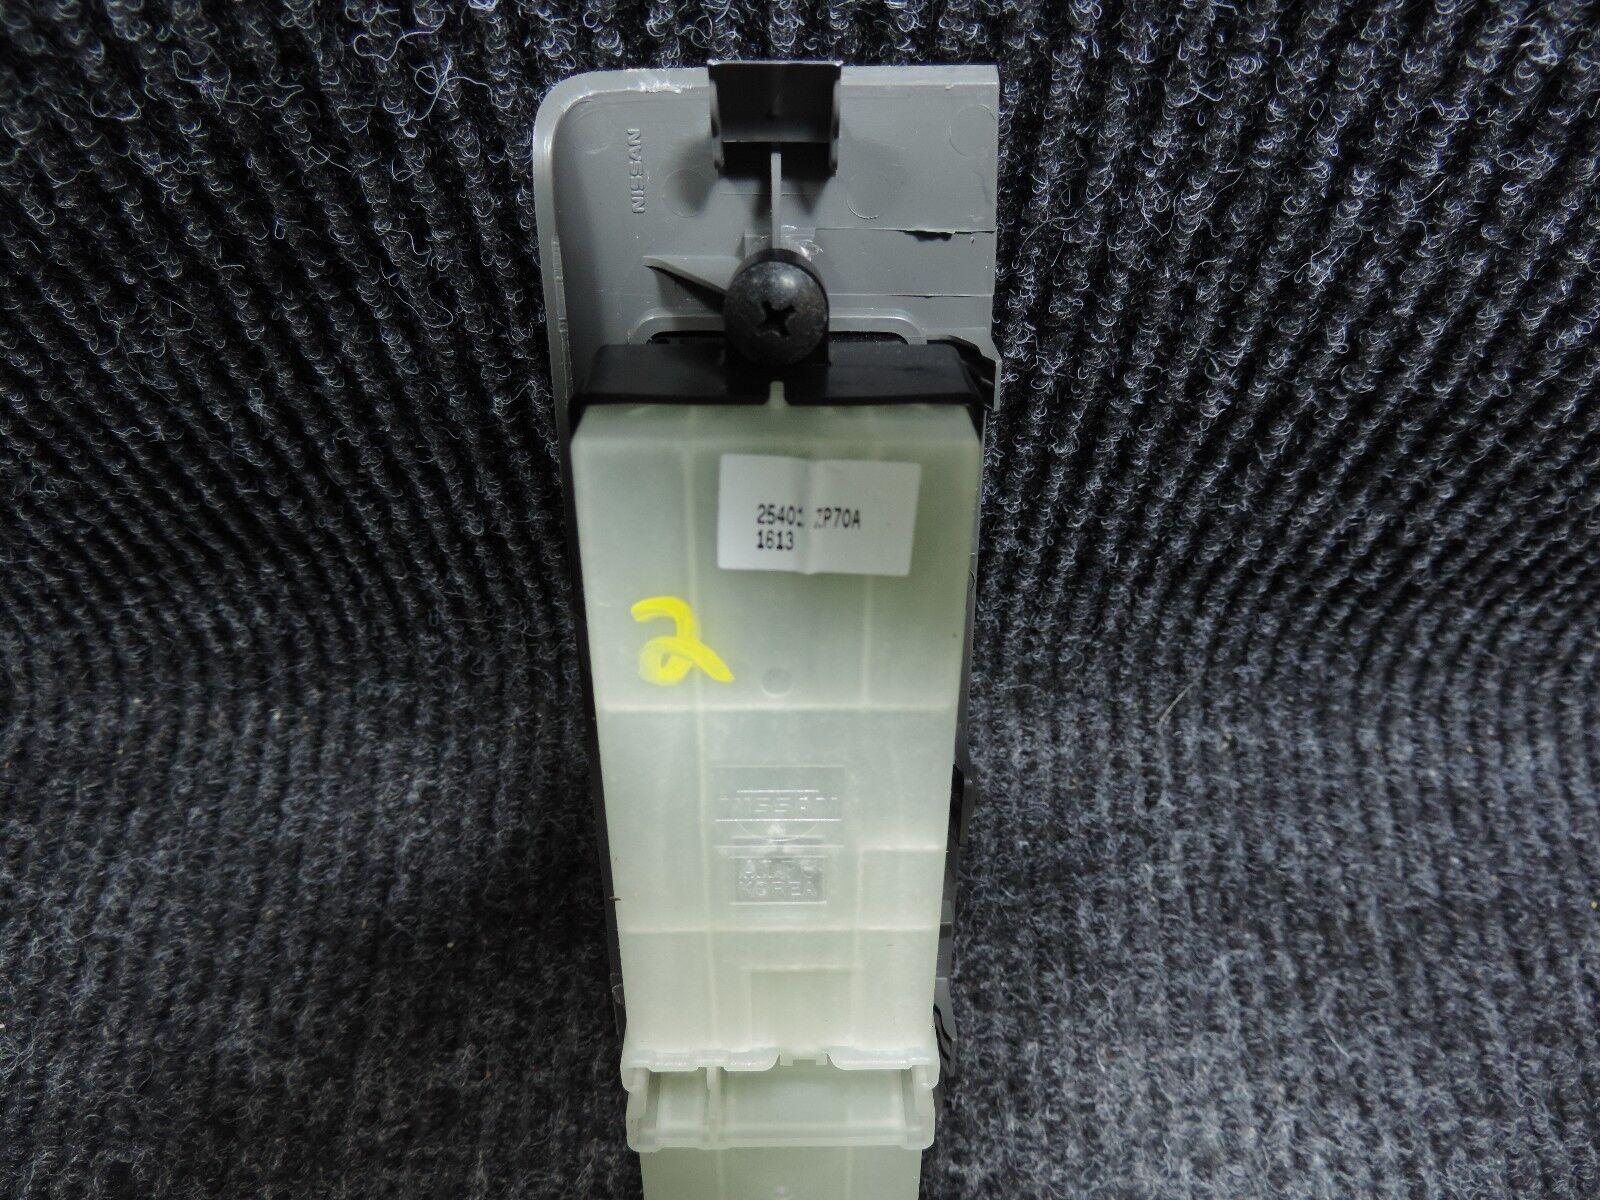 Used Nissan Frontier Switches And Controls For Sale 1999 Fuse Box 2011 2015 Factory Oem Master Power Window Door Locks 2